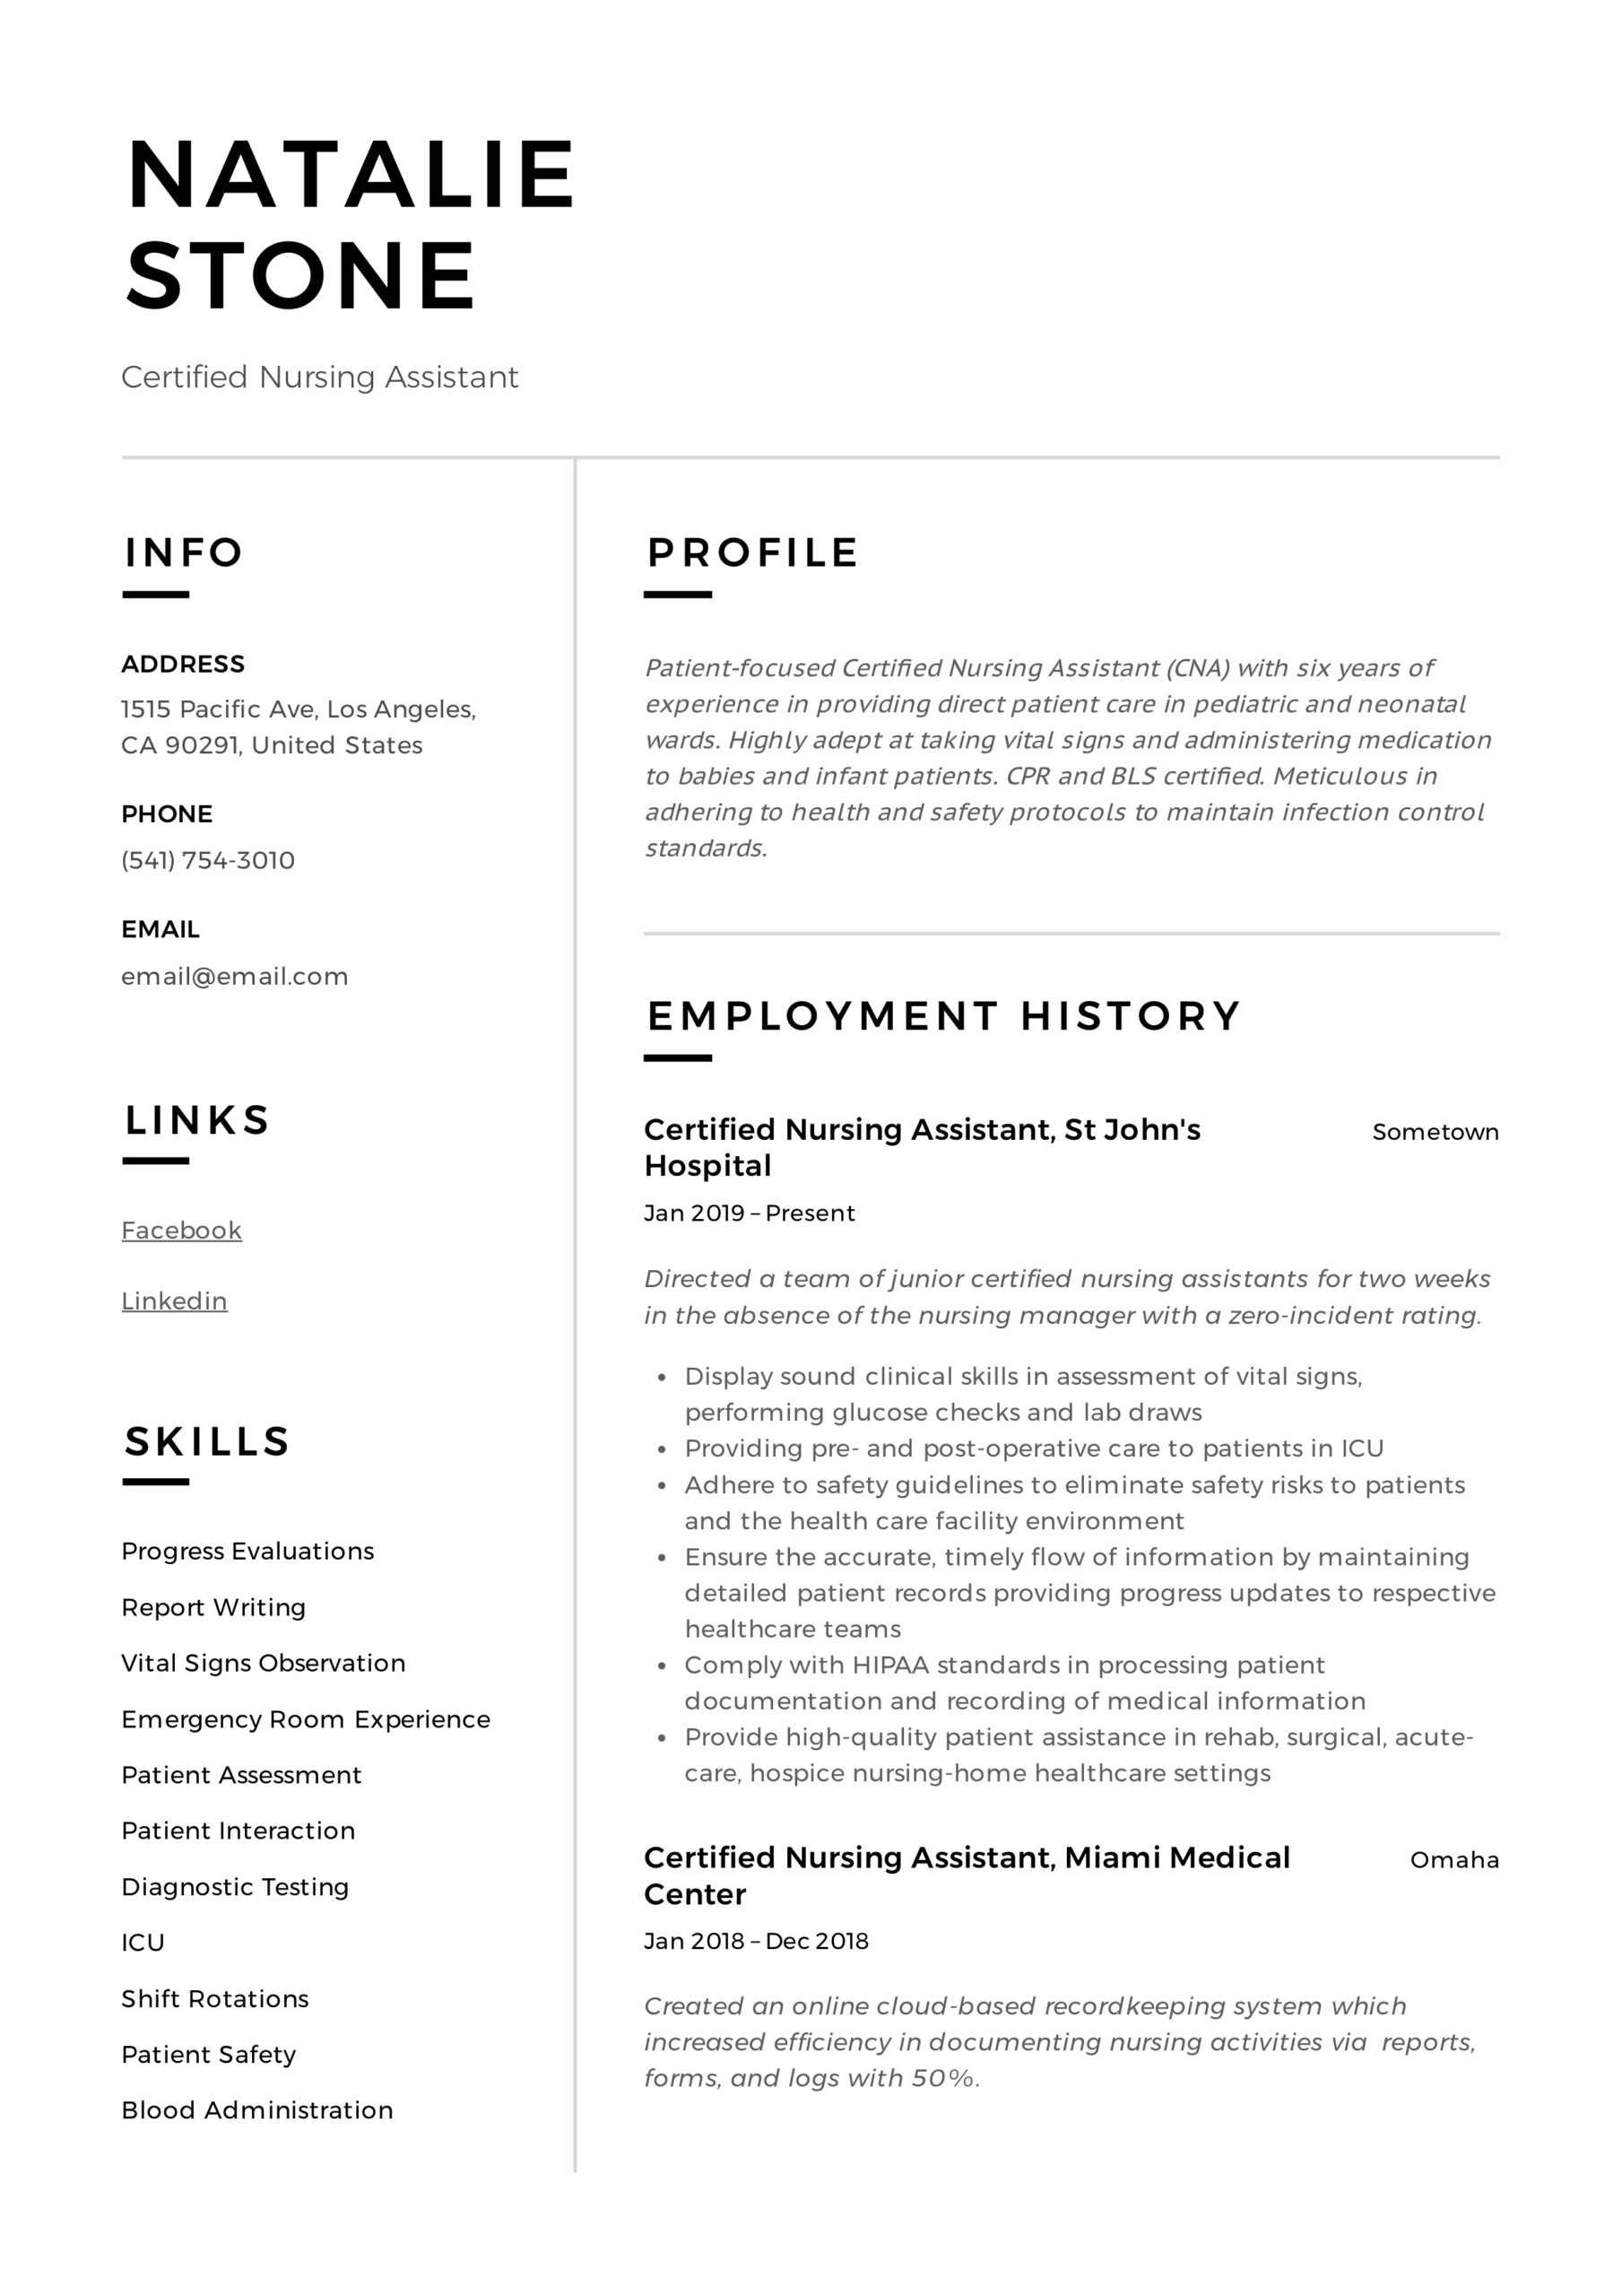 certified nursing assistant resume writing guide templates cna examples for masters Resume Cna Resume Examples 2020